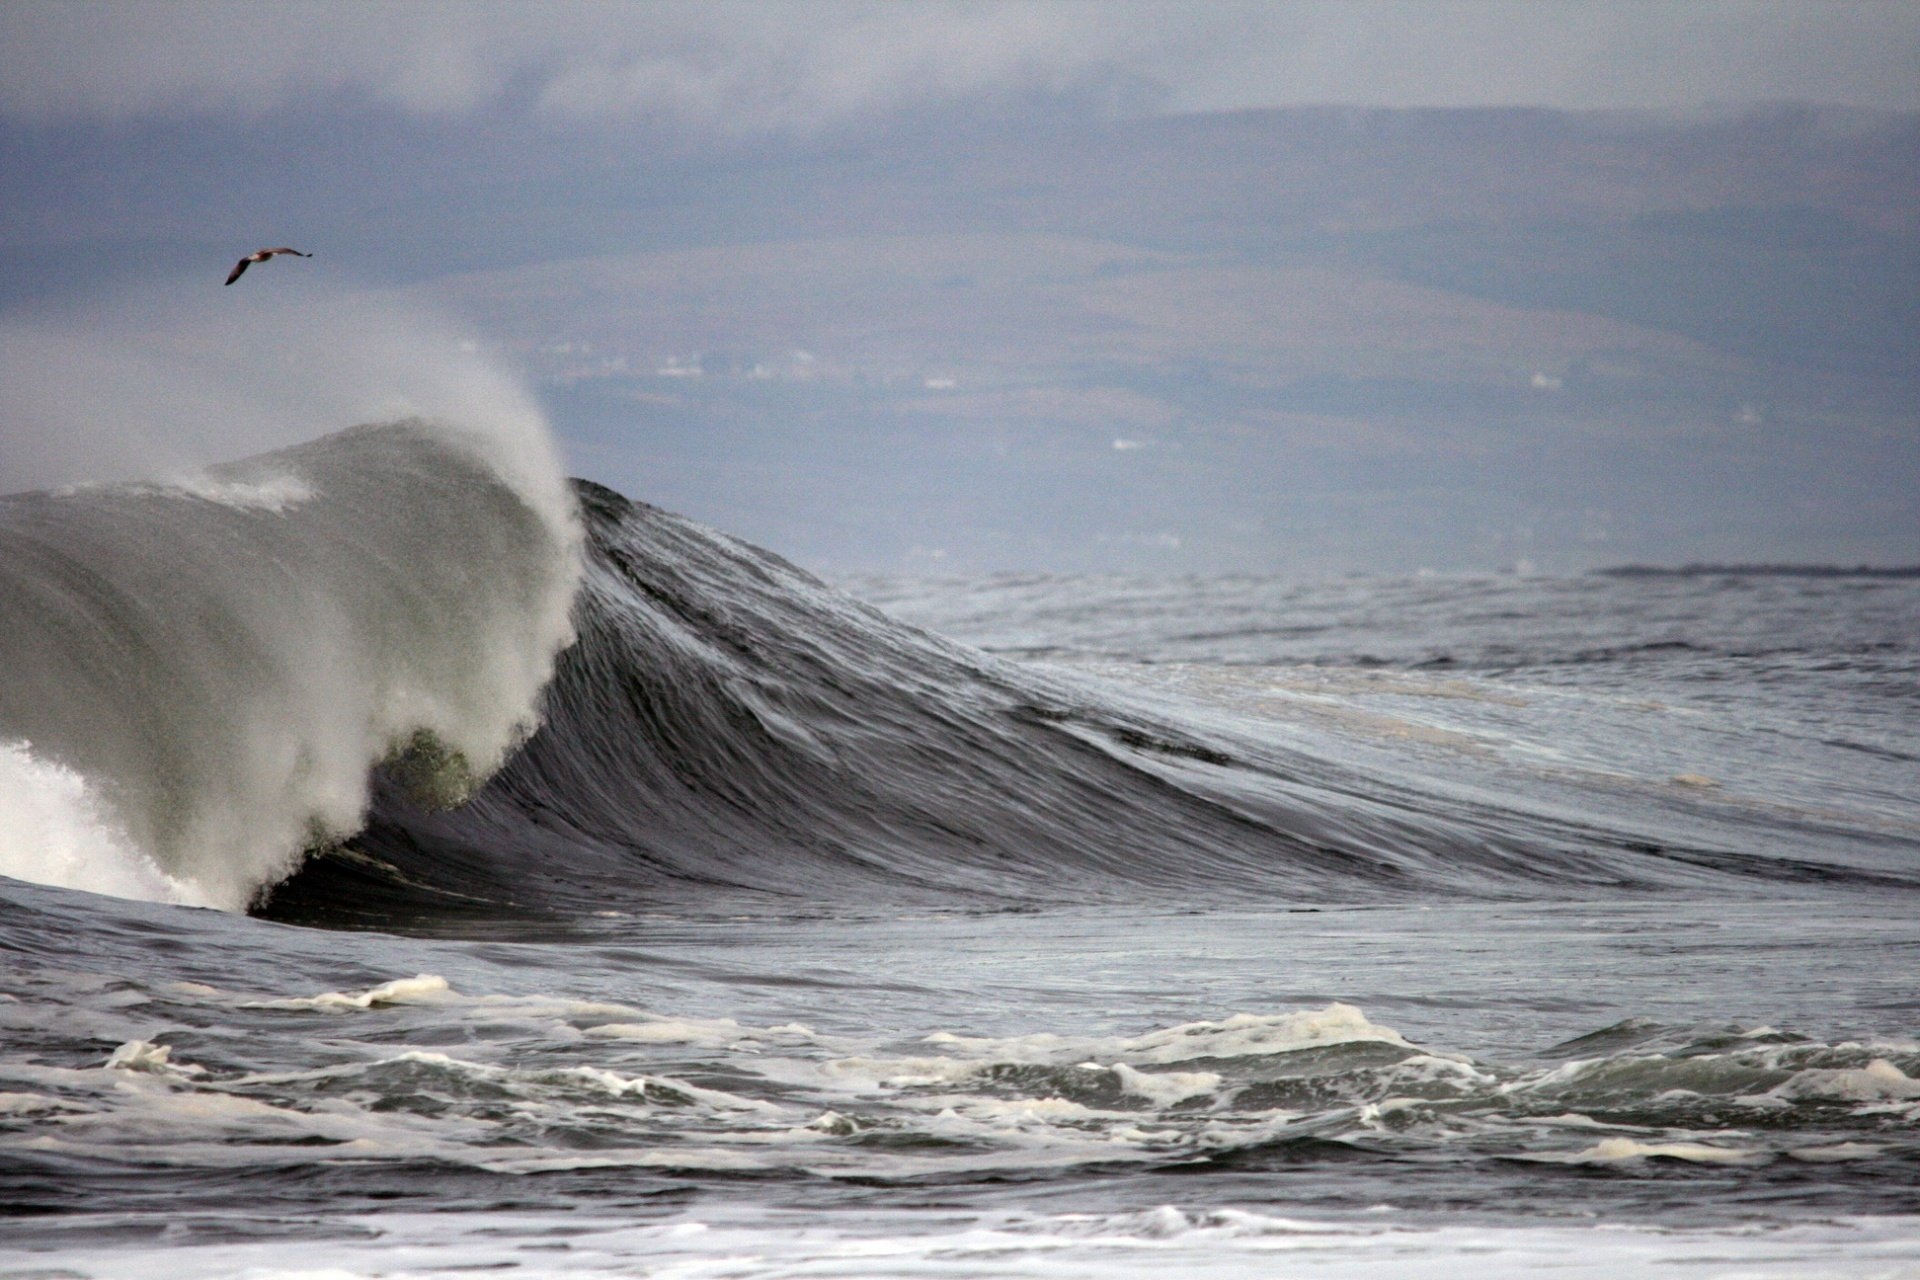 Mark Stephens's photo of Bundoran - The Peak